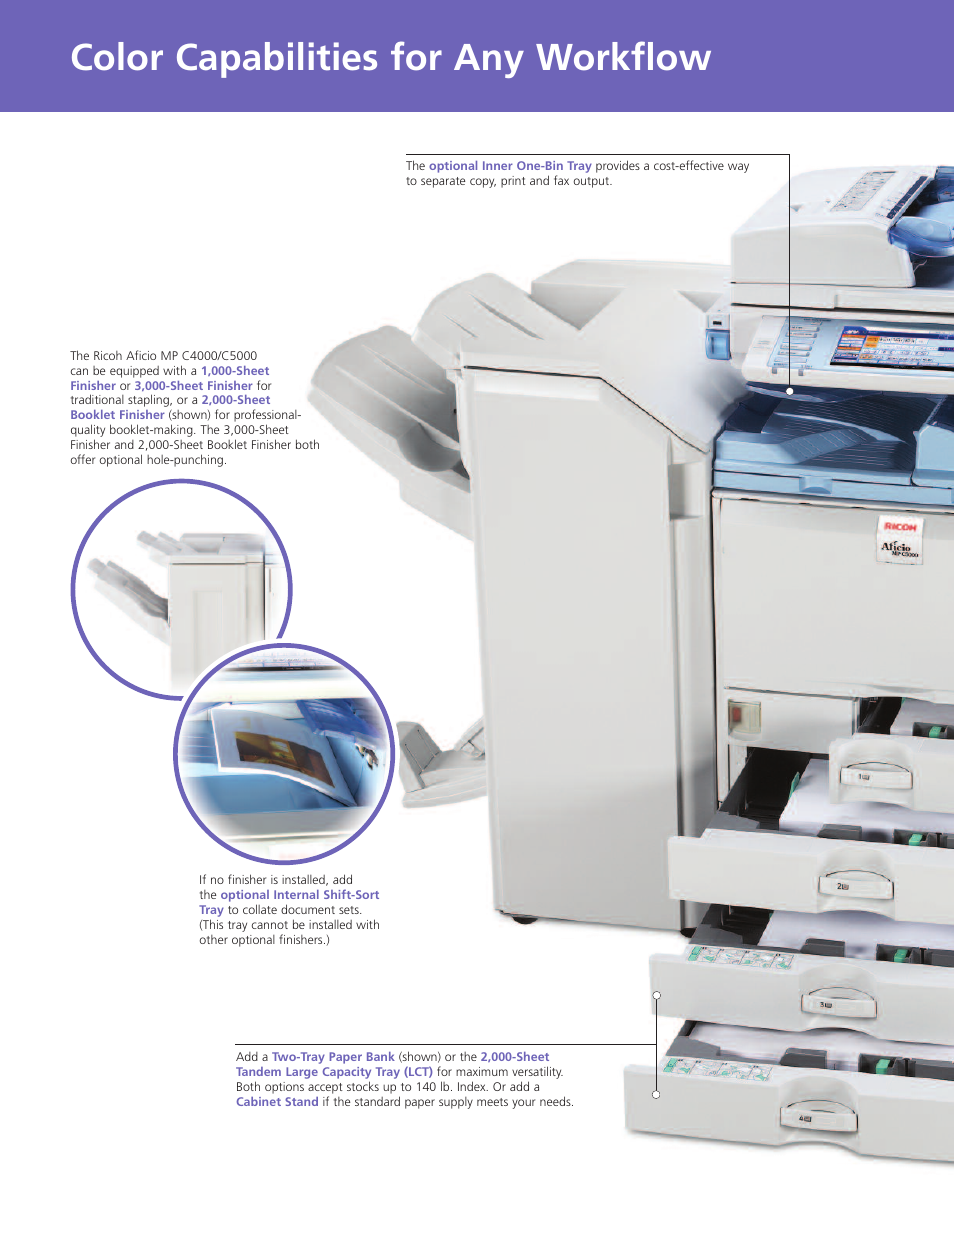 Color capabilities for any workflow | Ricoh Aficio MP C4000 User Manual |  Page 6 / 8